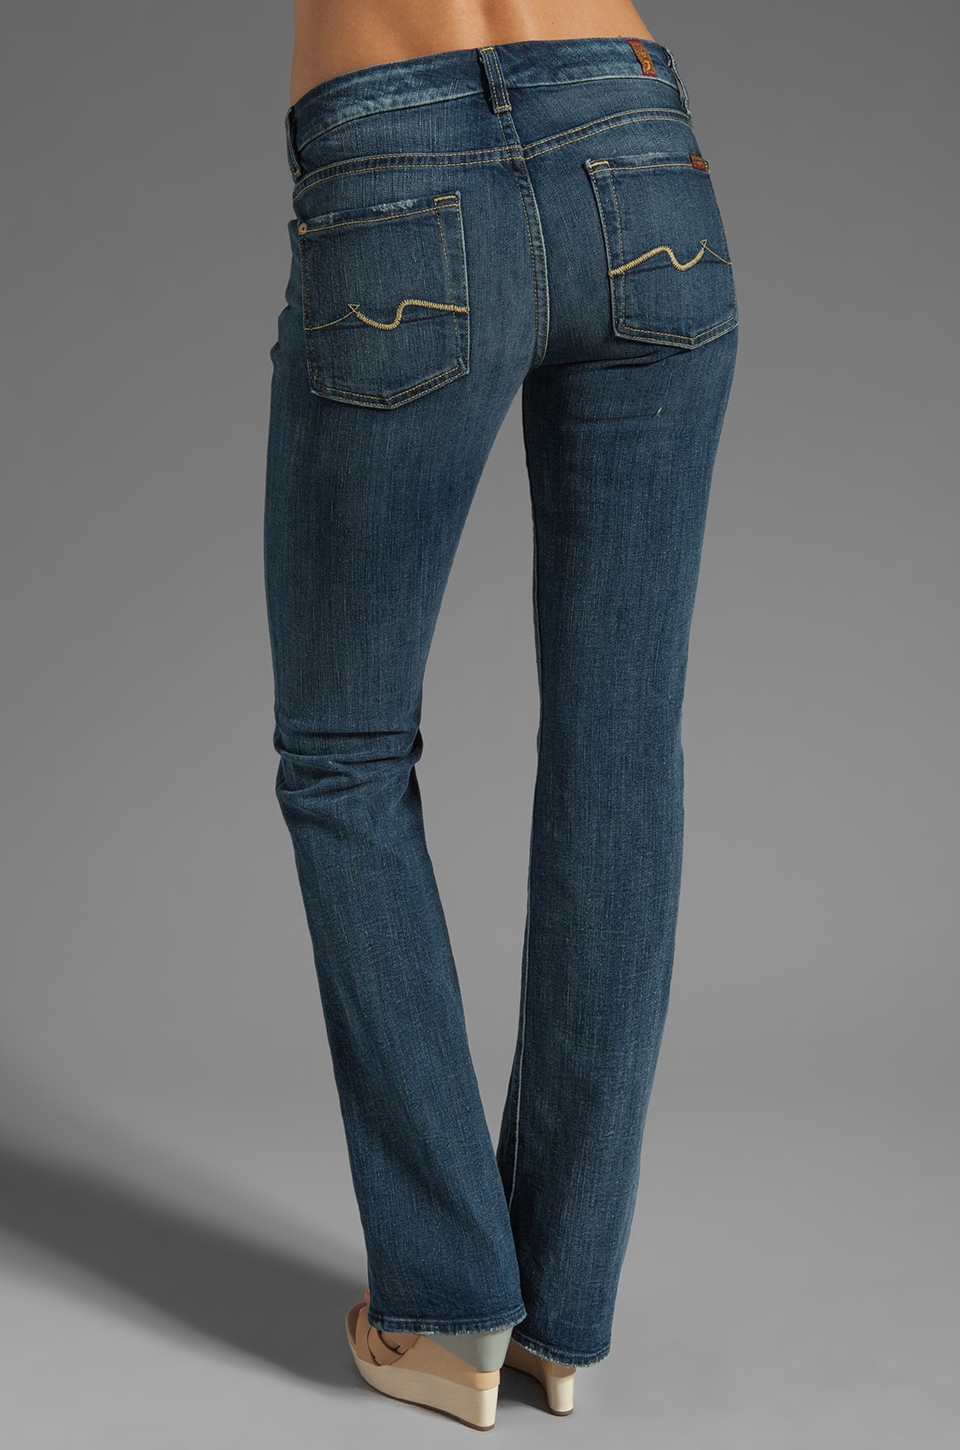 7 For All Mankind Kimmie Bootcut in Grinded Blue